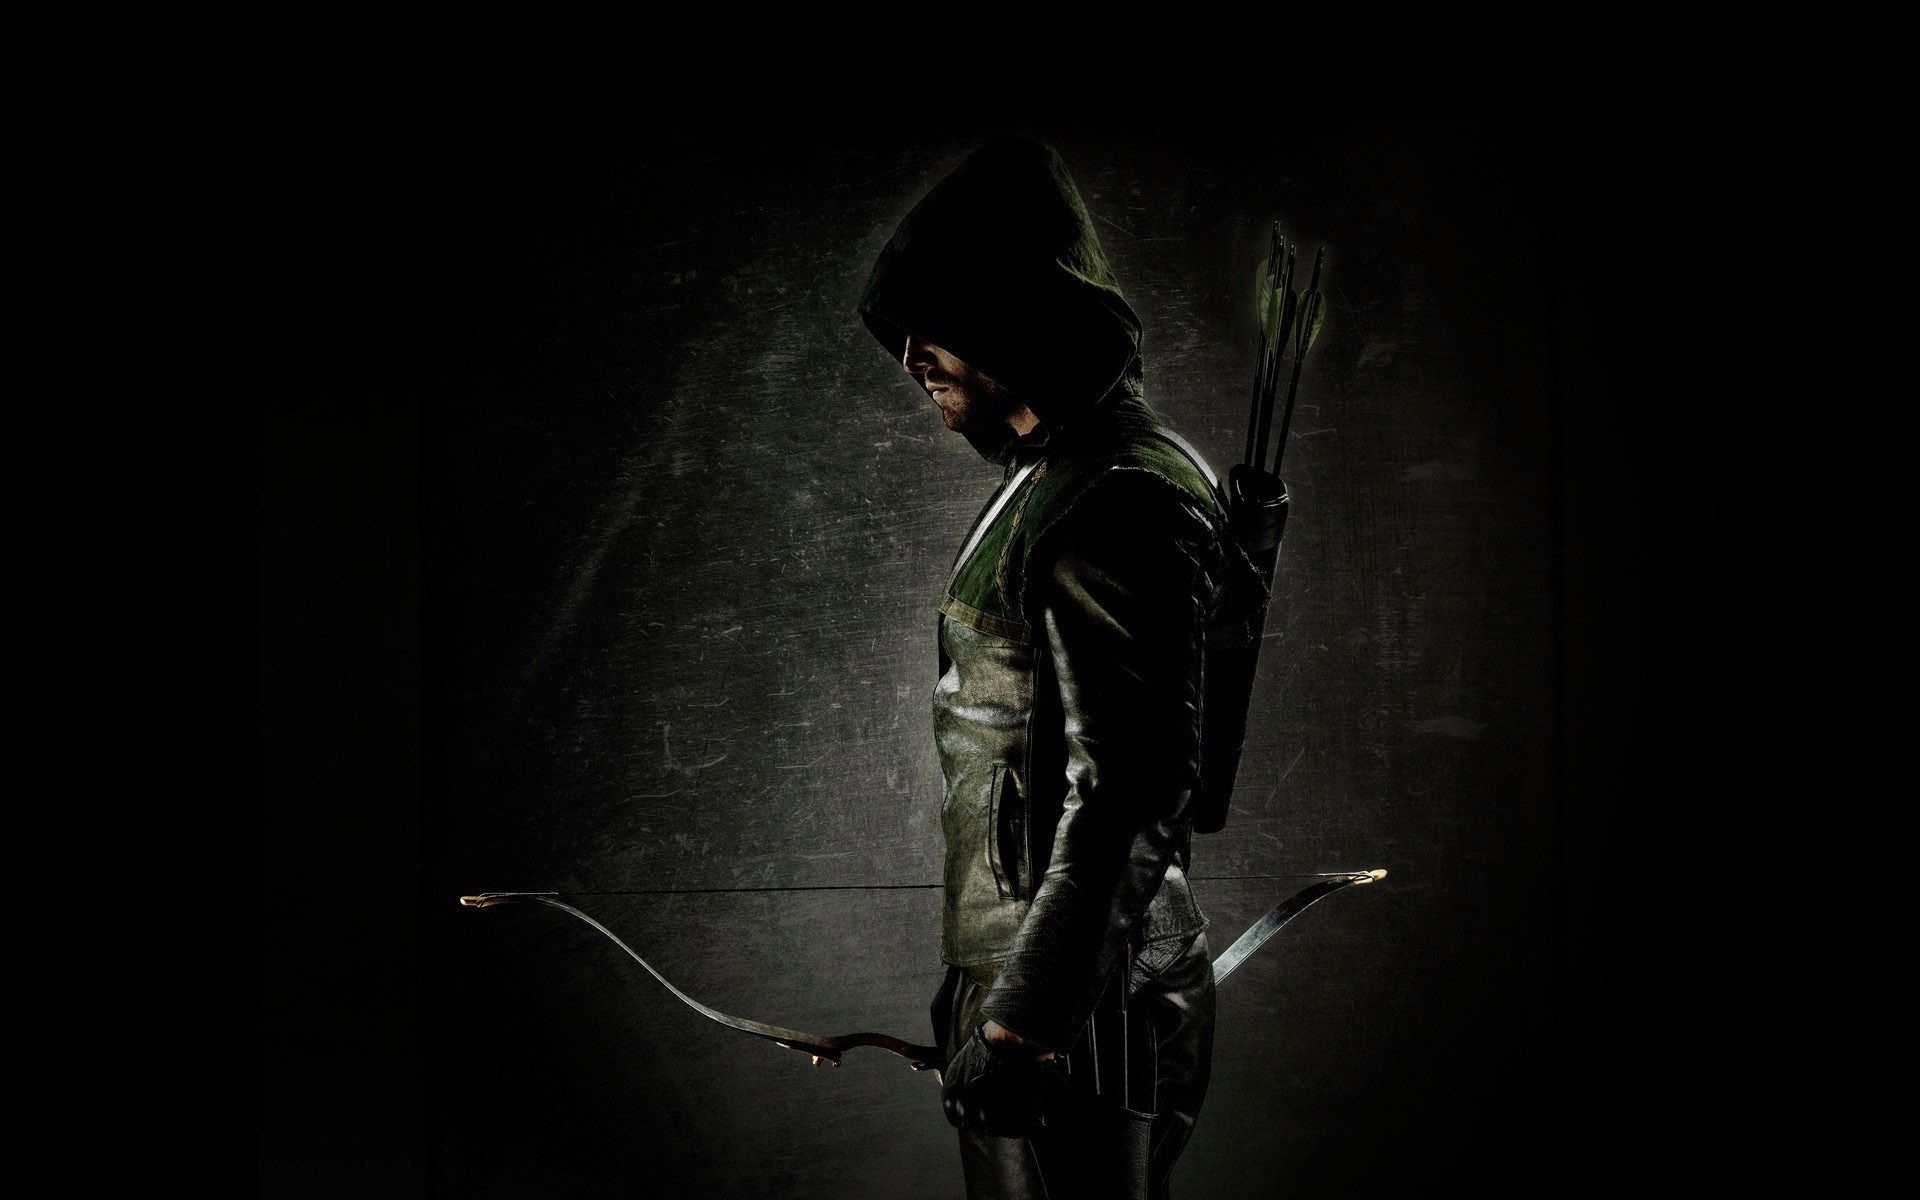 Download free green arrow wallpapers for your mobile phone by